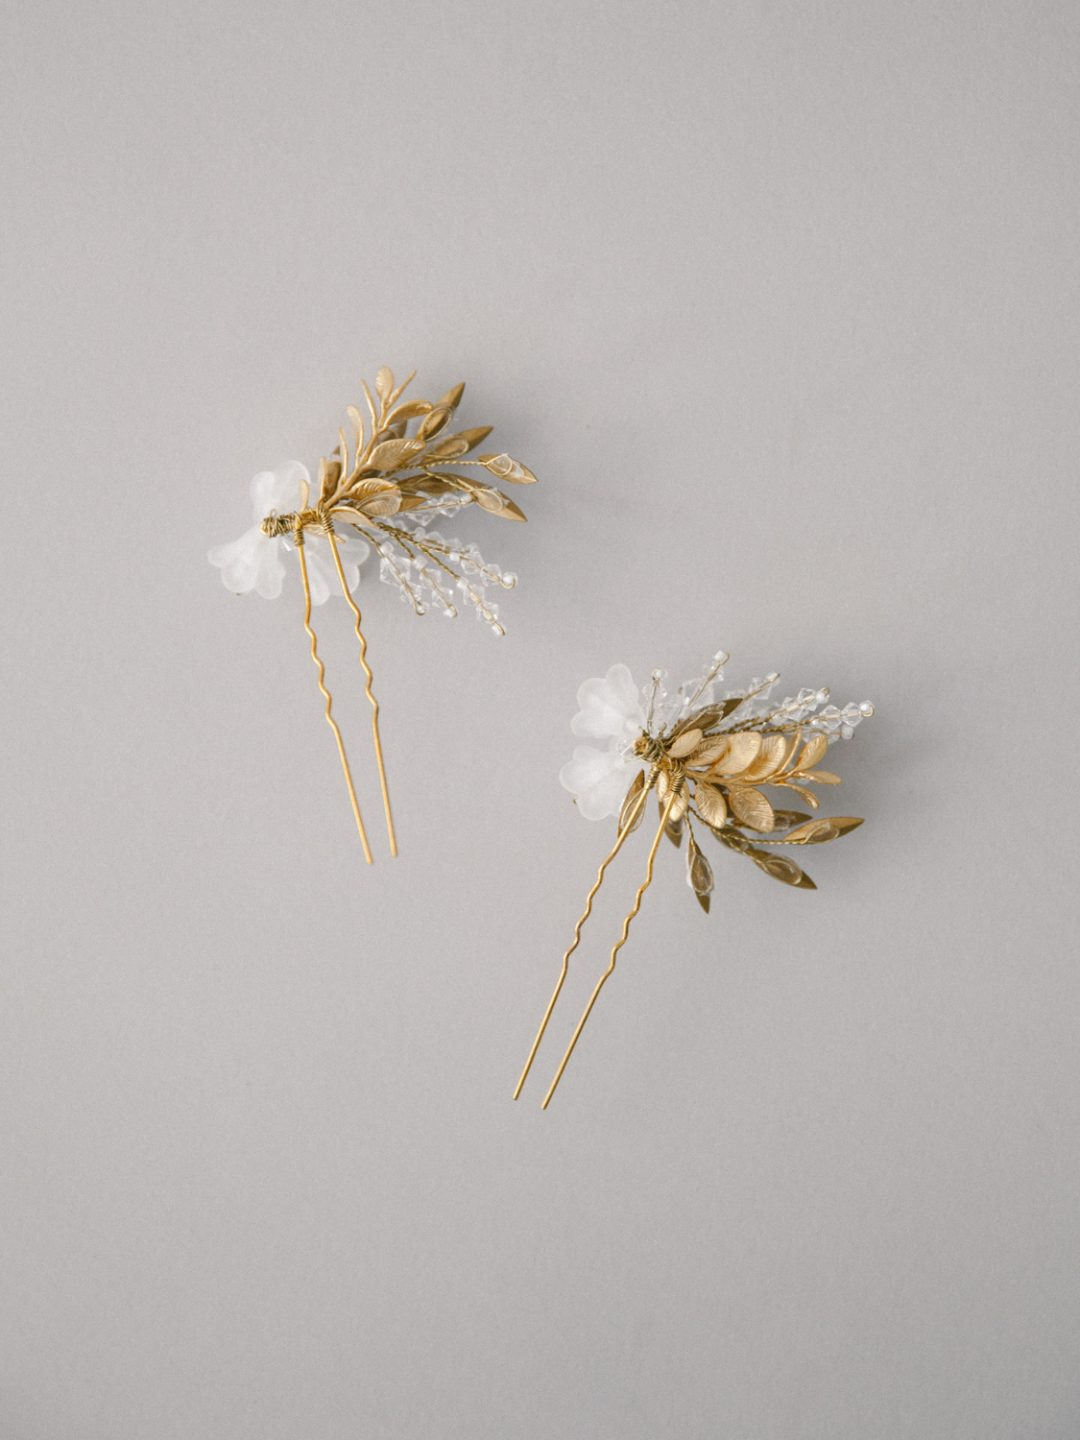 Crystal Bridal Hair Pins - Style 602 - SIBO Designs www.sibodesigns.com